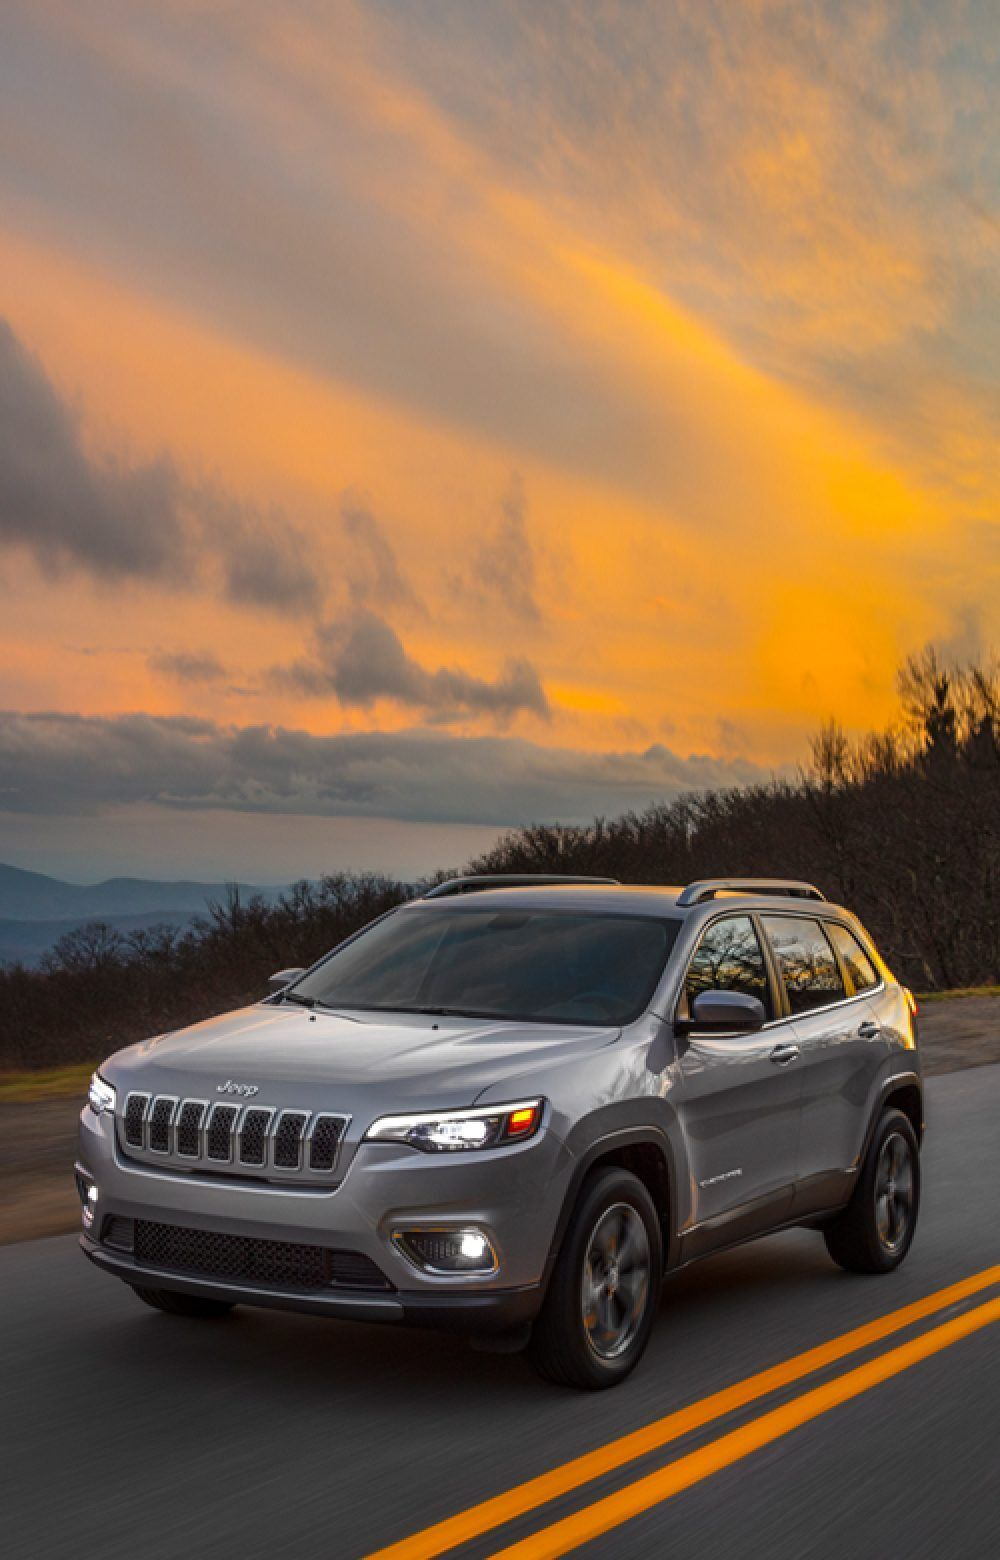 2019 Jeep Cherokee Discover New Adventures In Style In 2020 Jeep Cherokee Jeep Off Road Adventure